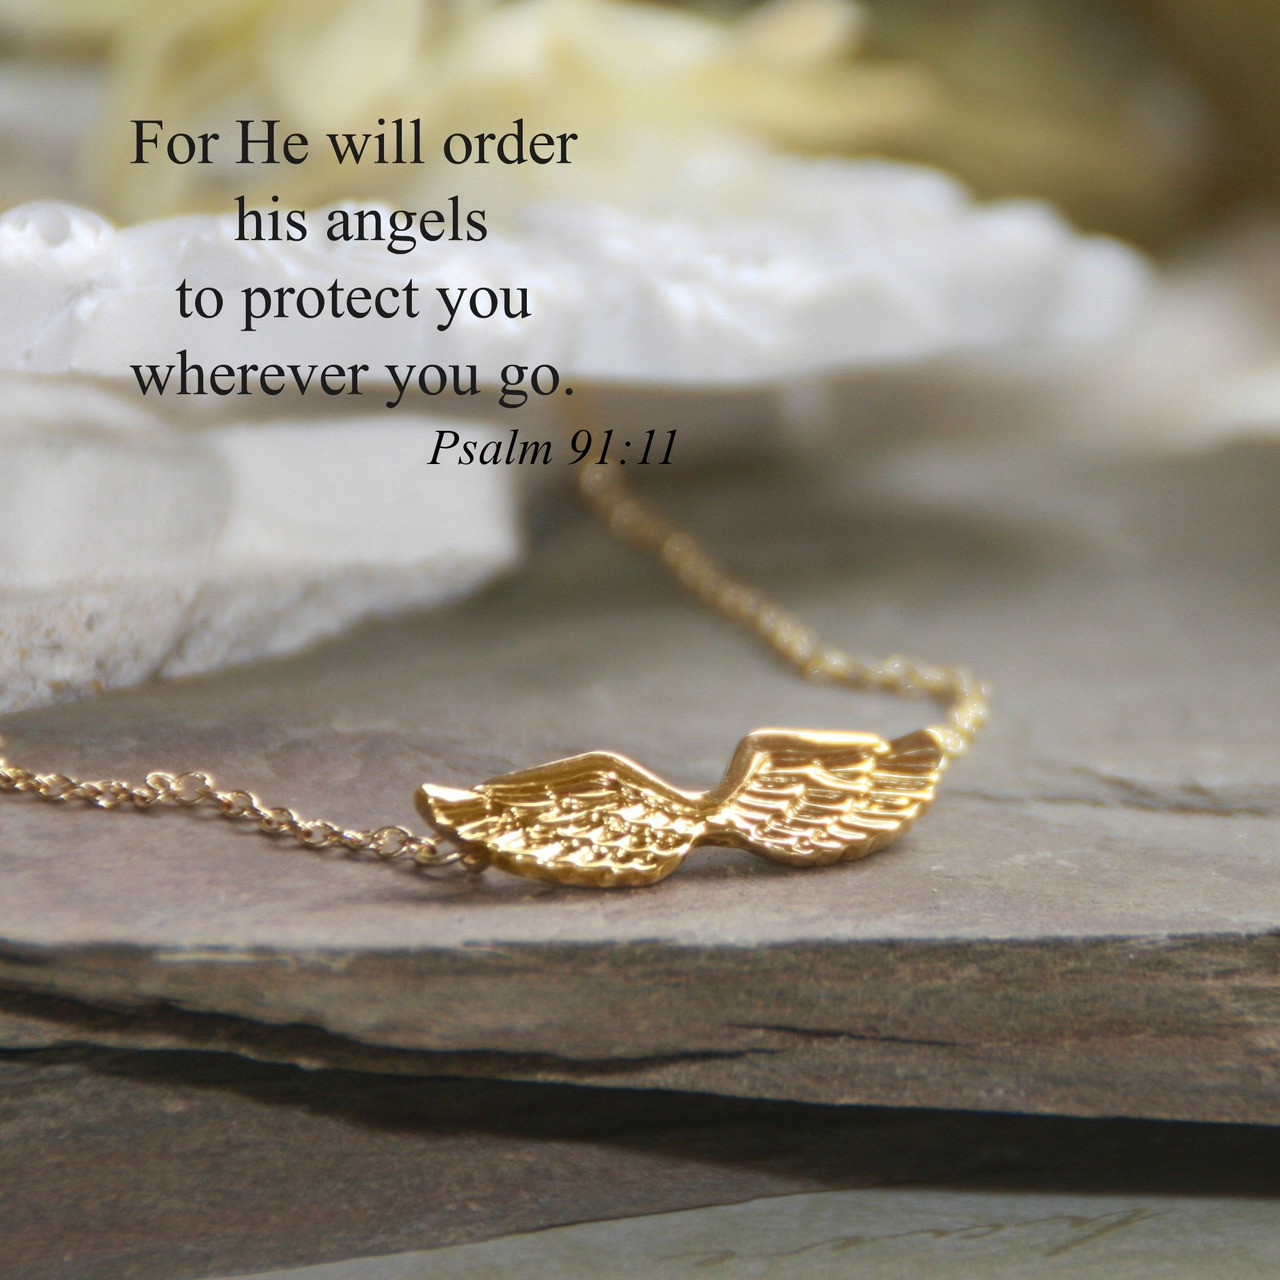 IN-540G  Angel Wings Necklace with Psalm 91:11 Scripture Gold Finish